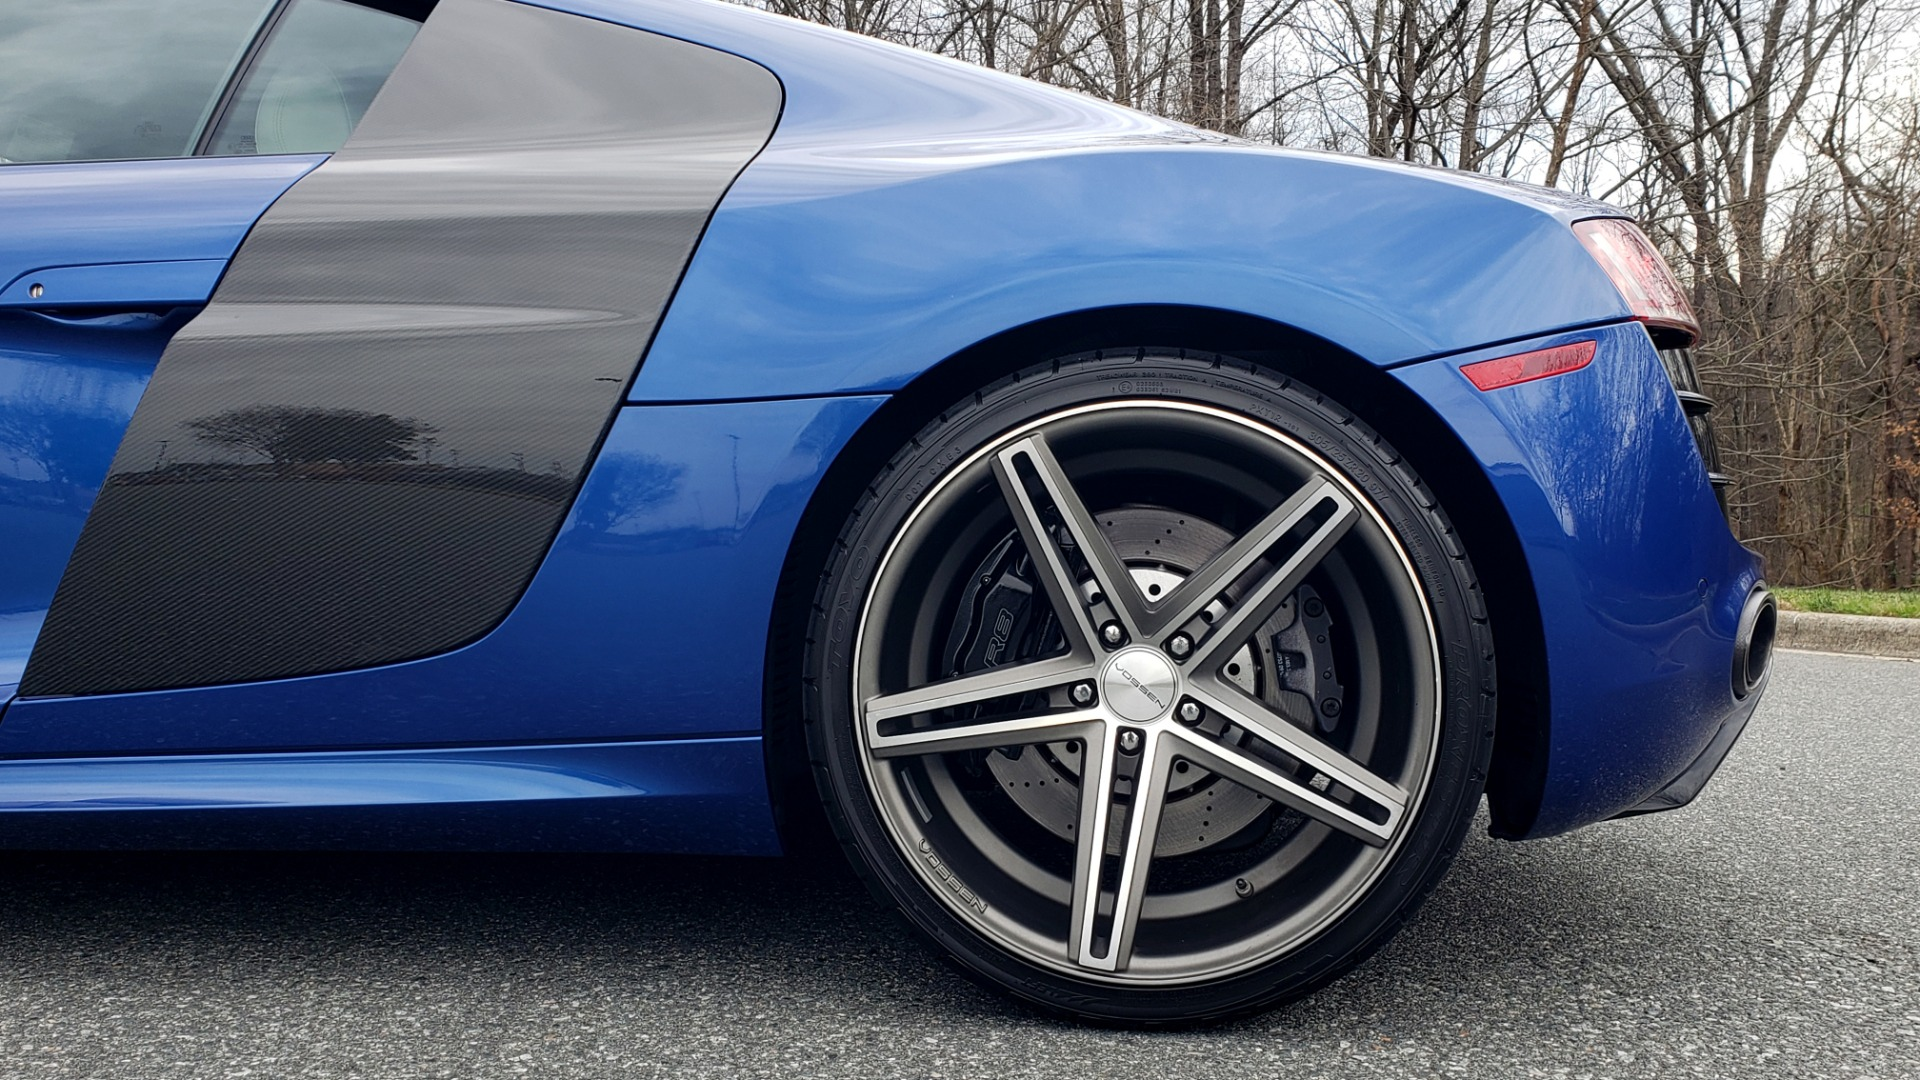 Used 2010 Audi R8 5.2L V10 / AWD / COUPE / NAV / 6-SPD AUTO / CUSTOM WHEELS for sale Sold at Formula Imports in Charlotte NC 28227 72